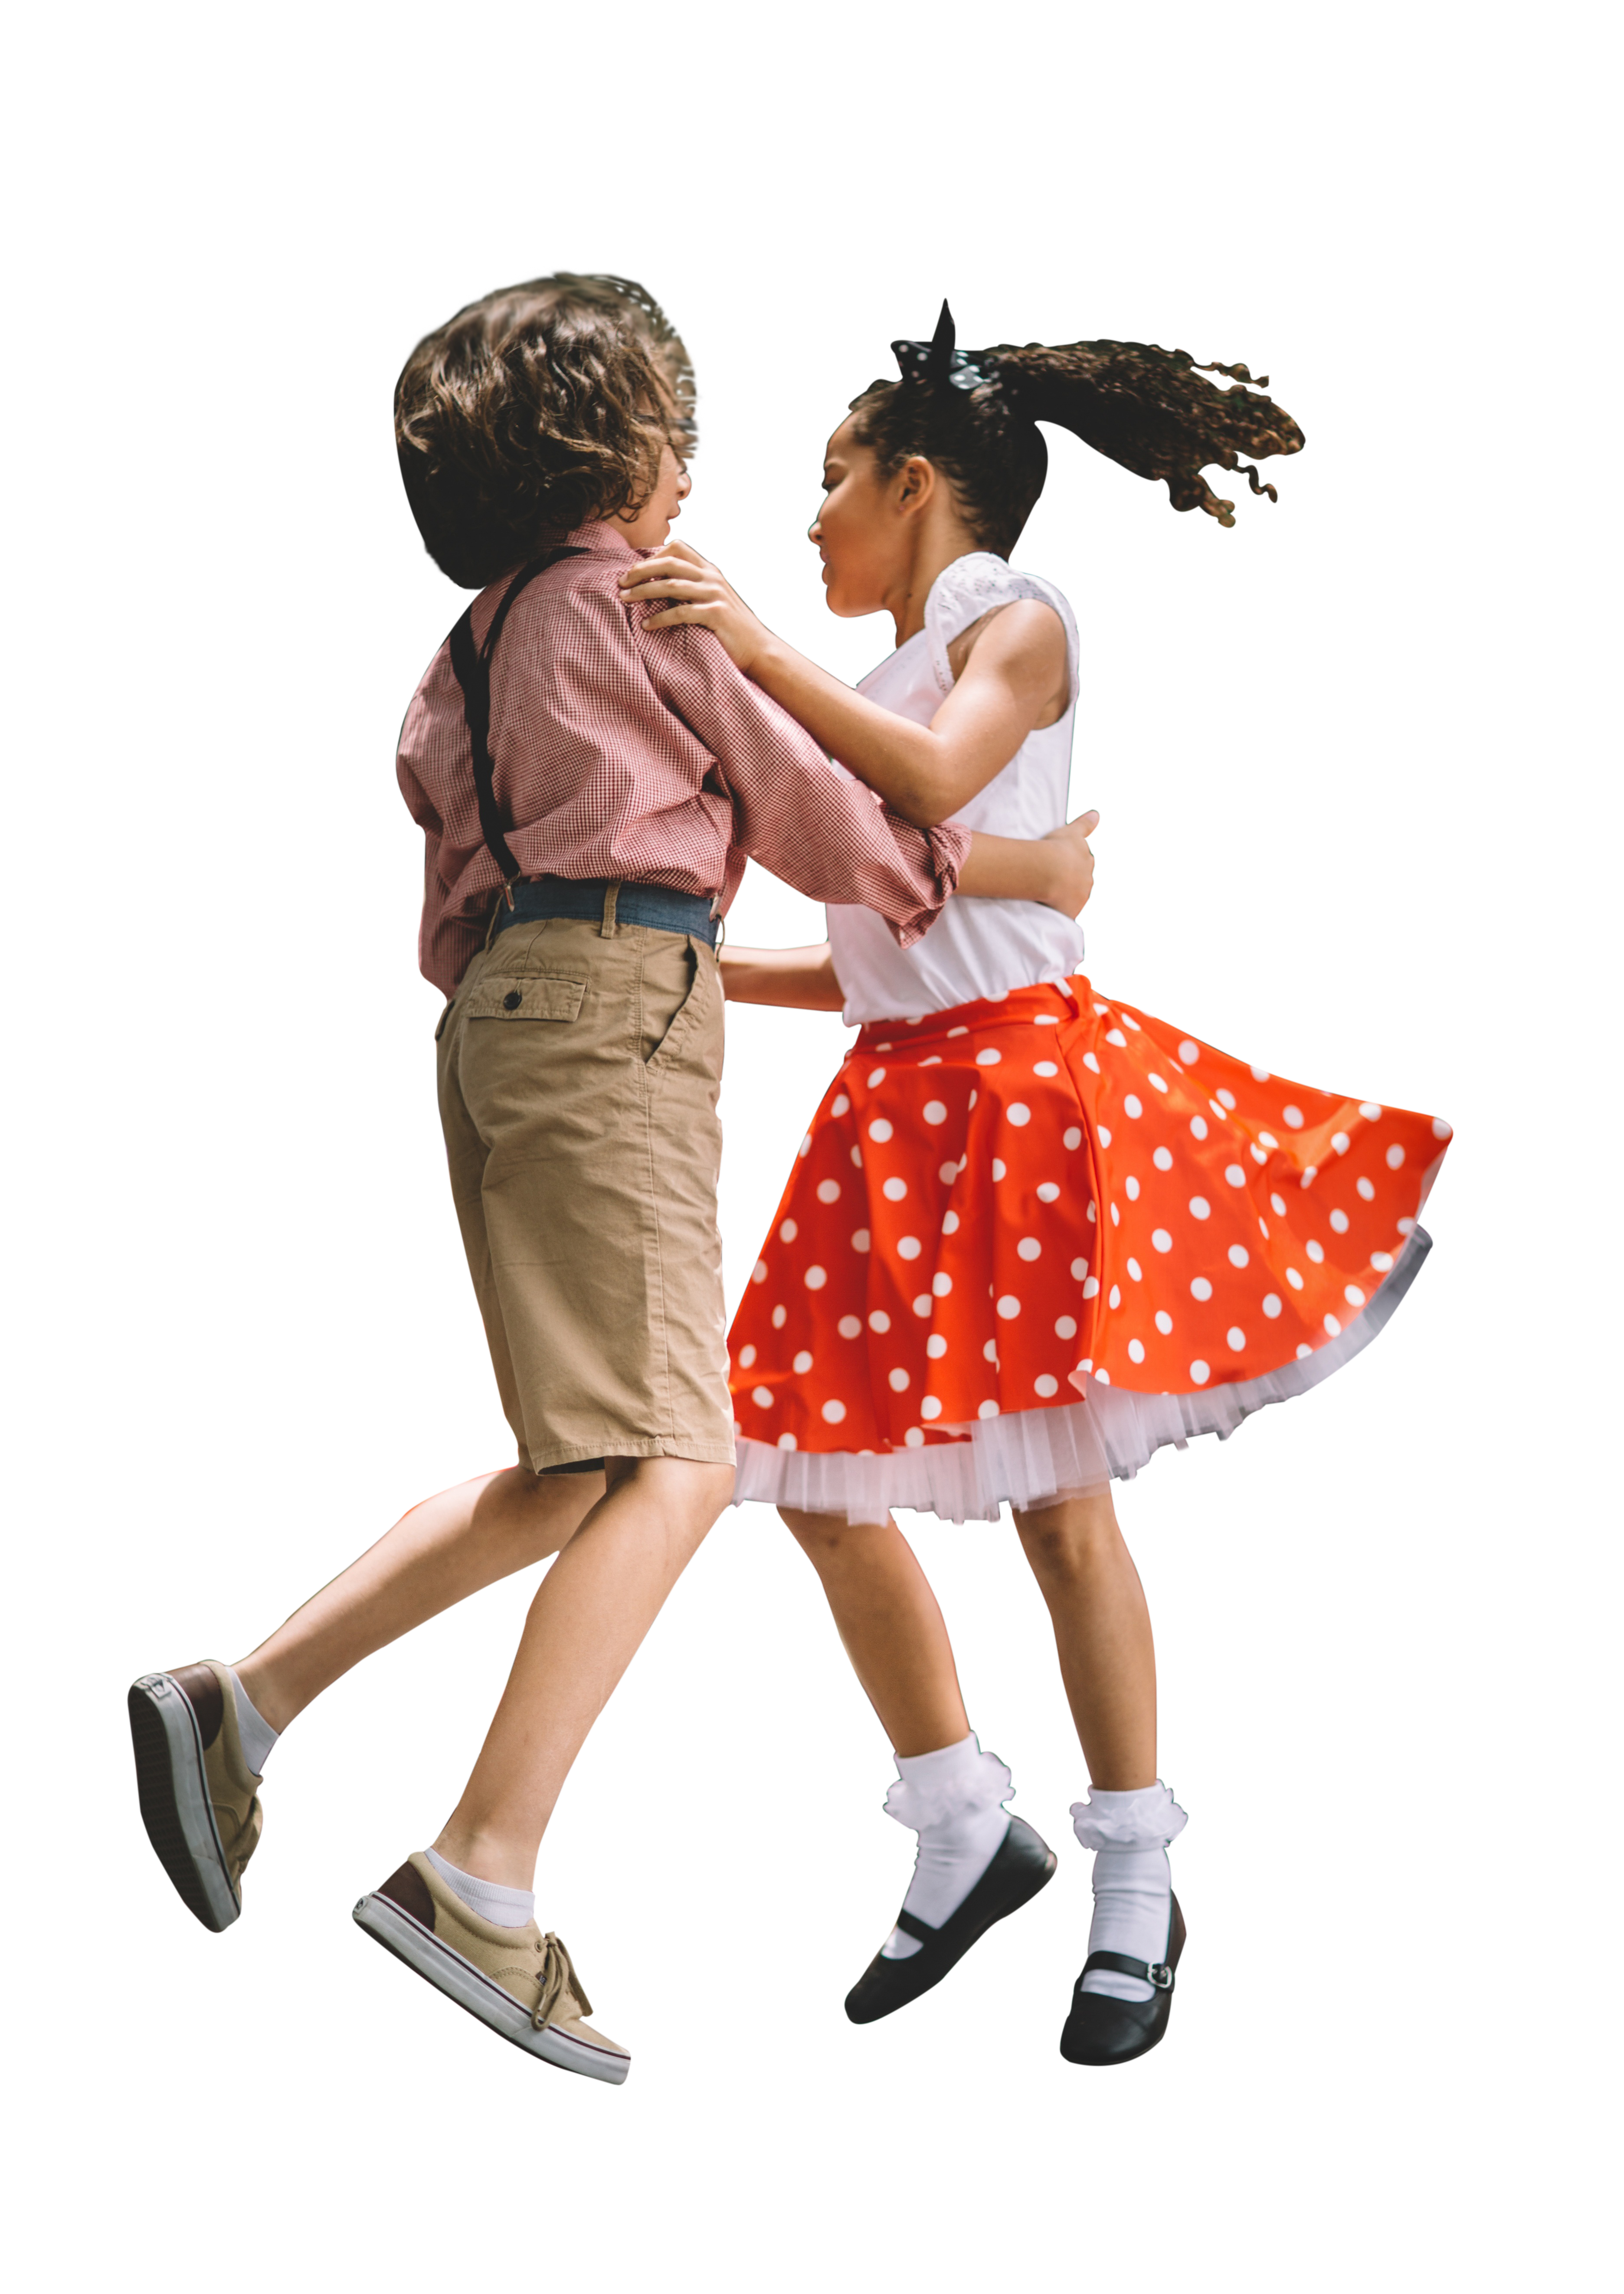 Couple Dance PNG Image.